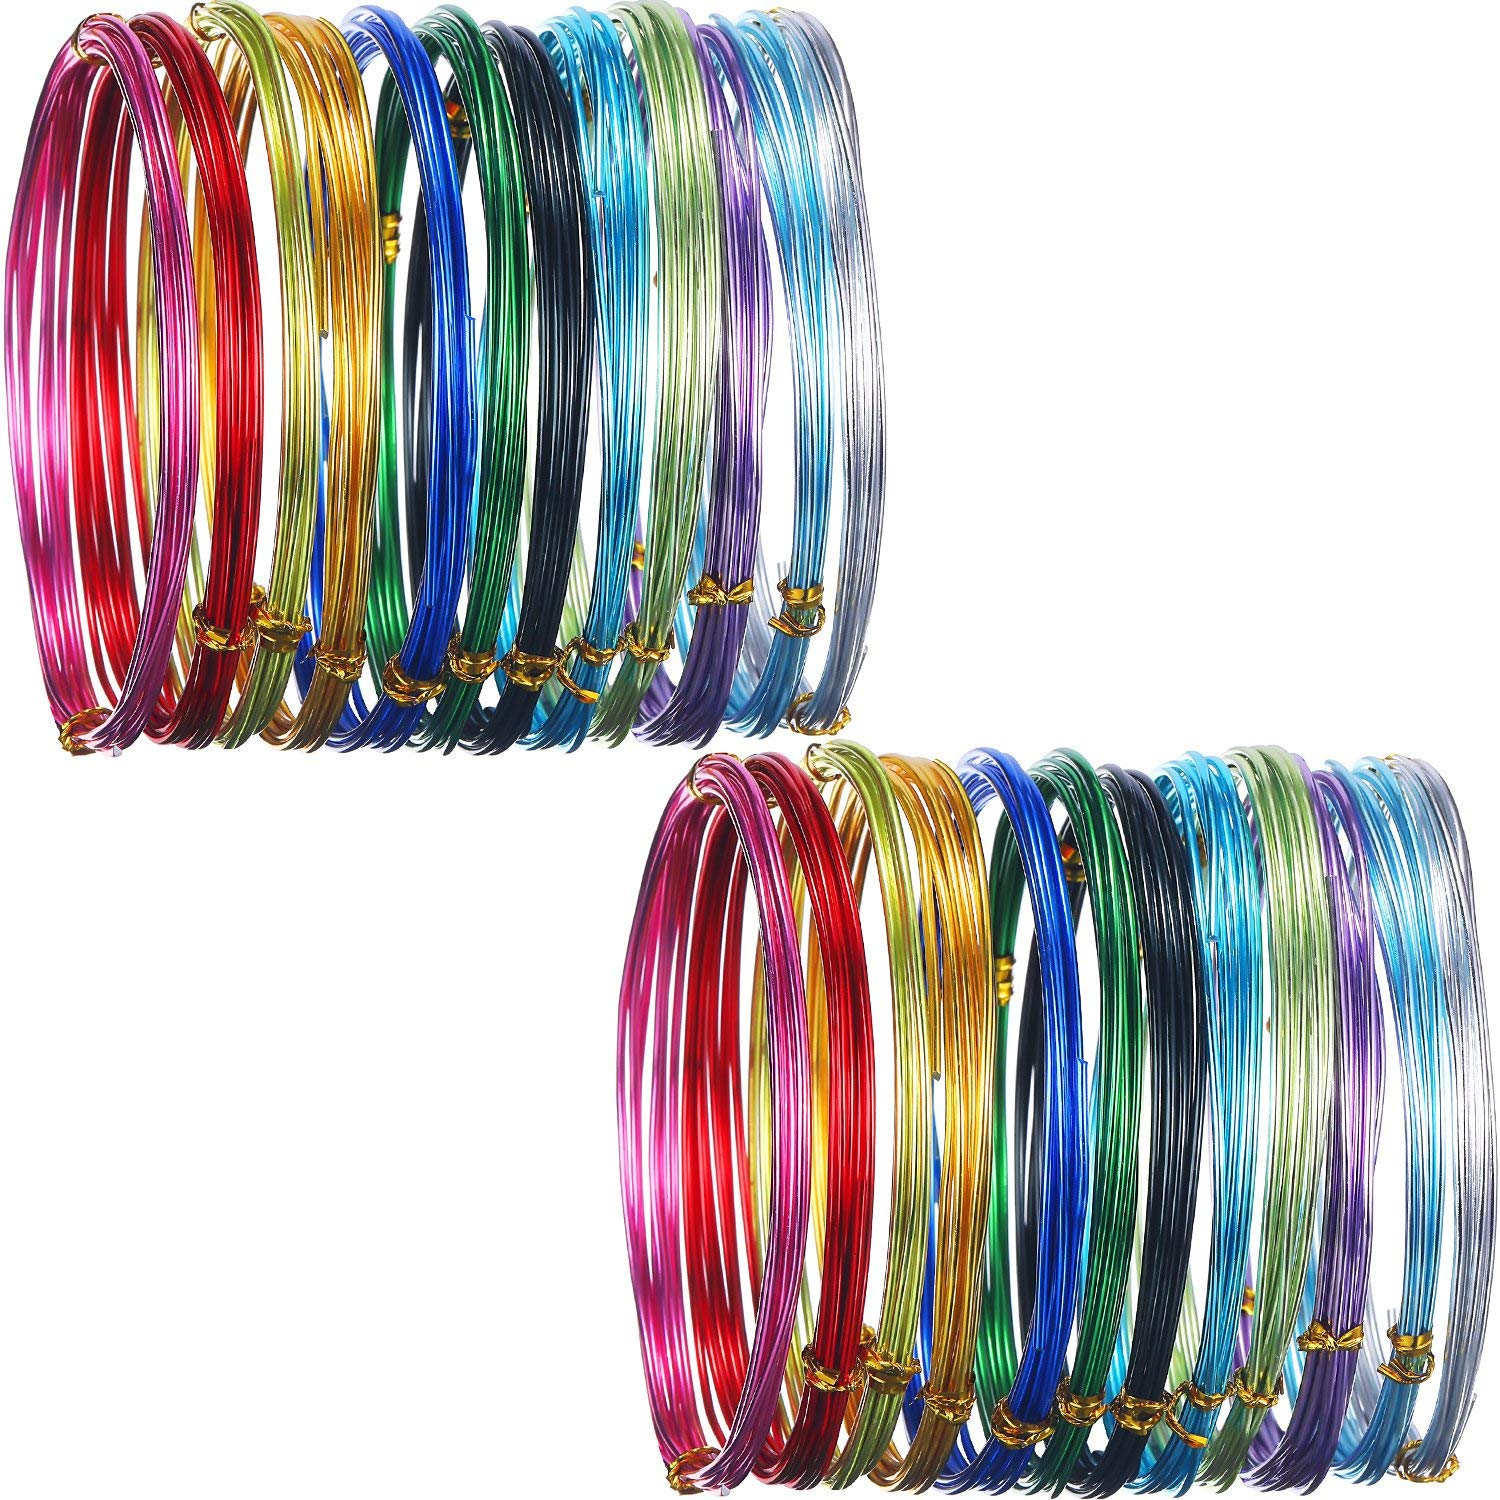 Hestya 24 Rolls Multi-Colored Aluminum Craft Wire, Flexible Metal for Art Creation and Jewelry Ornaments, 15 Gauge and 20 Gauge